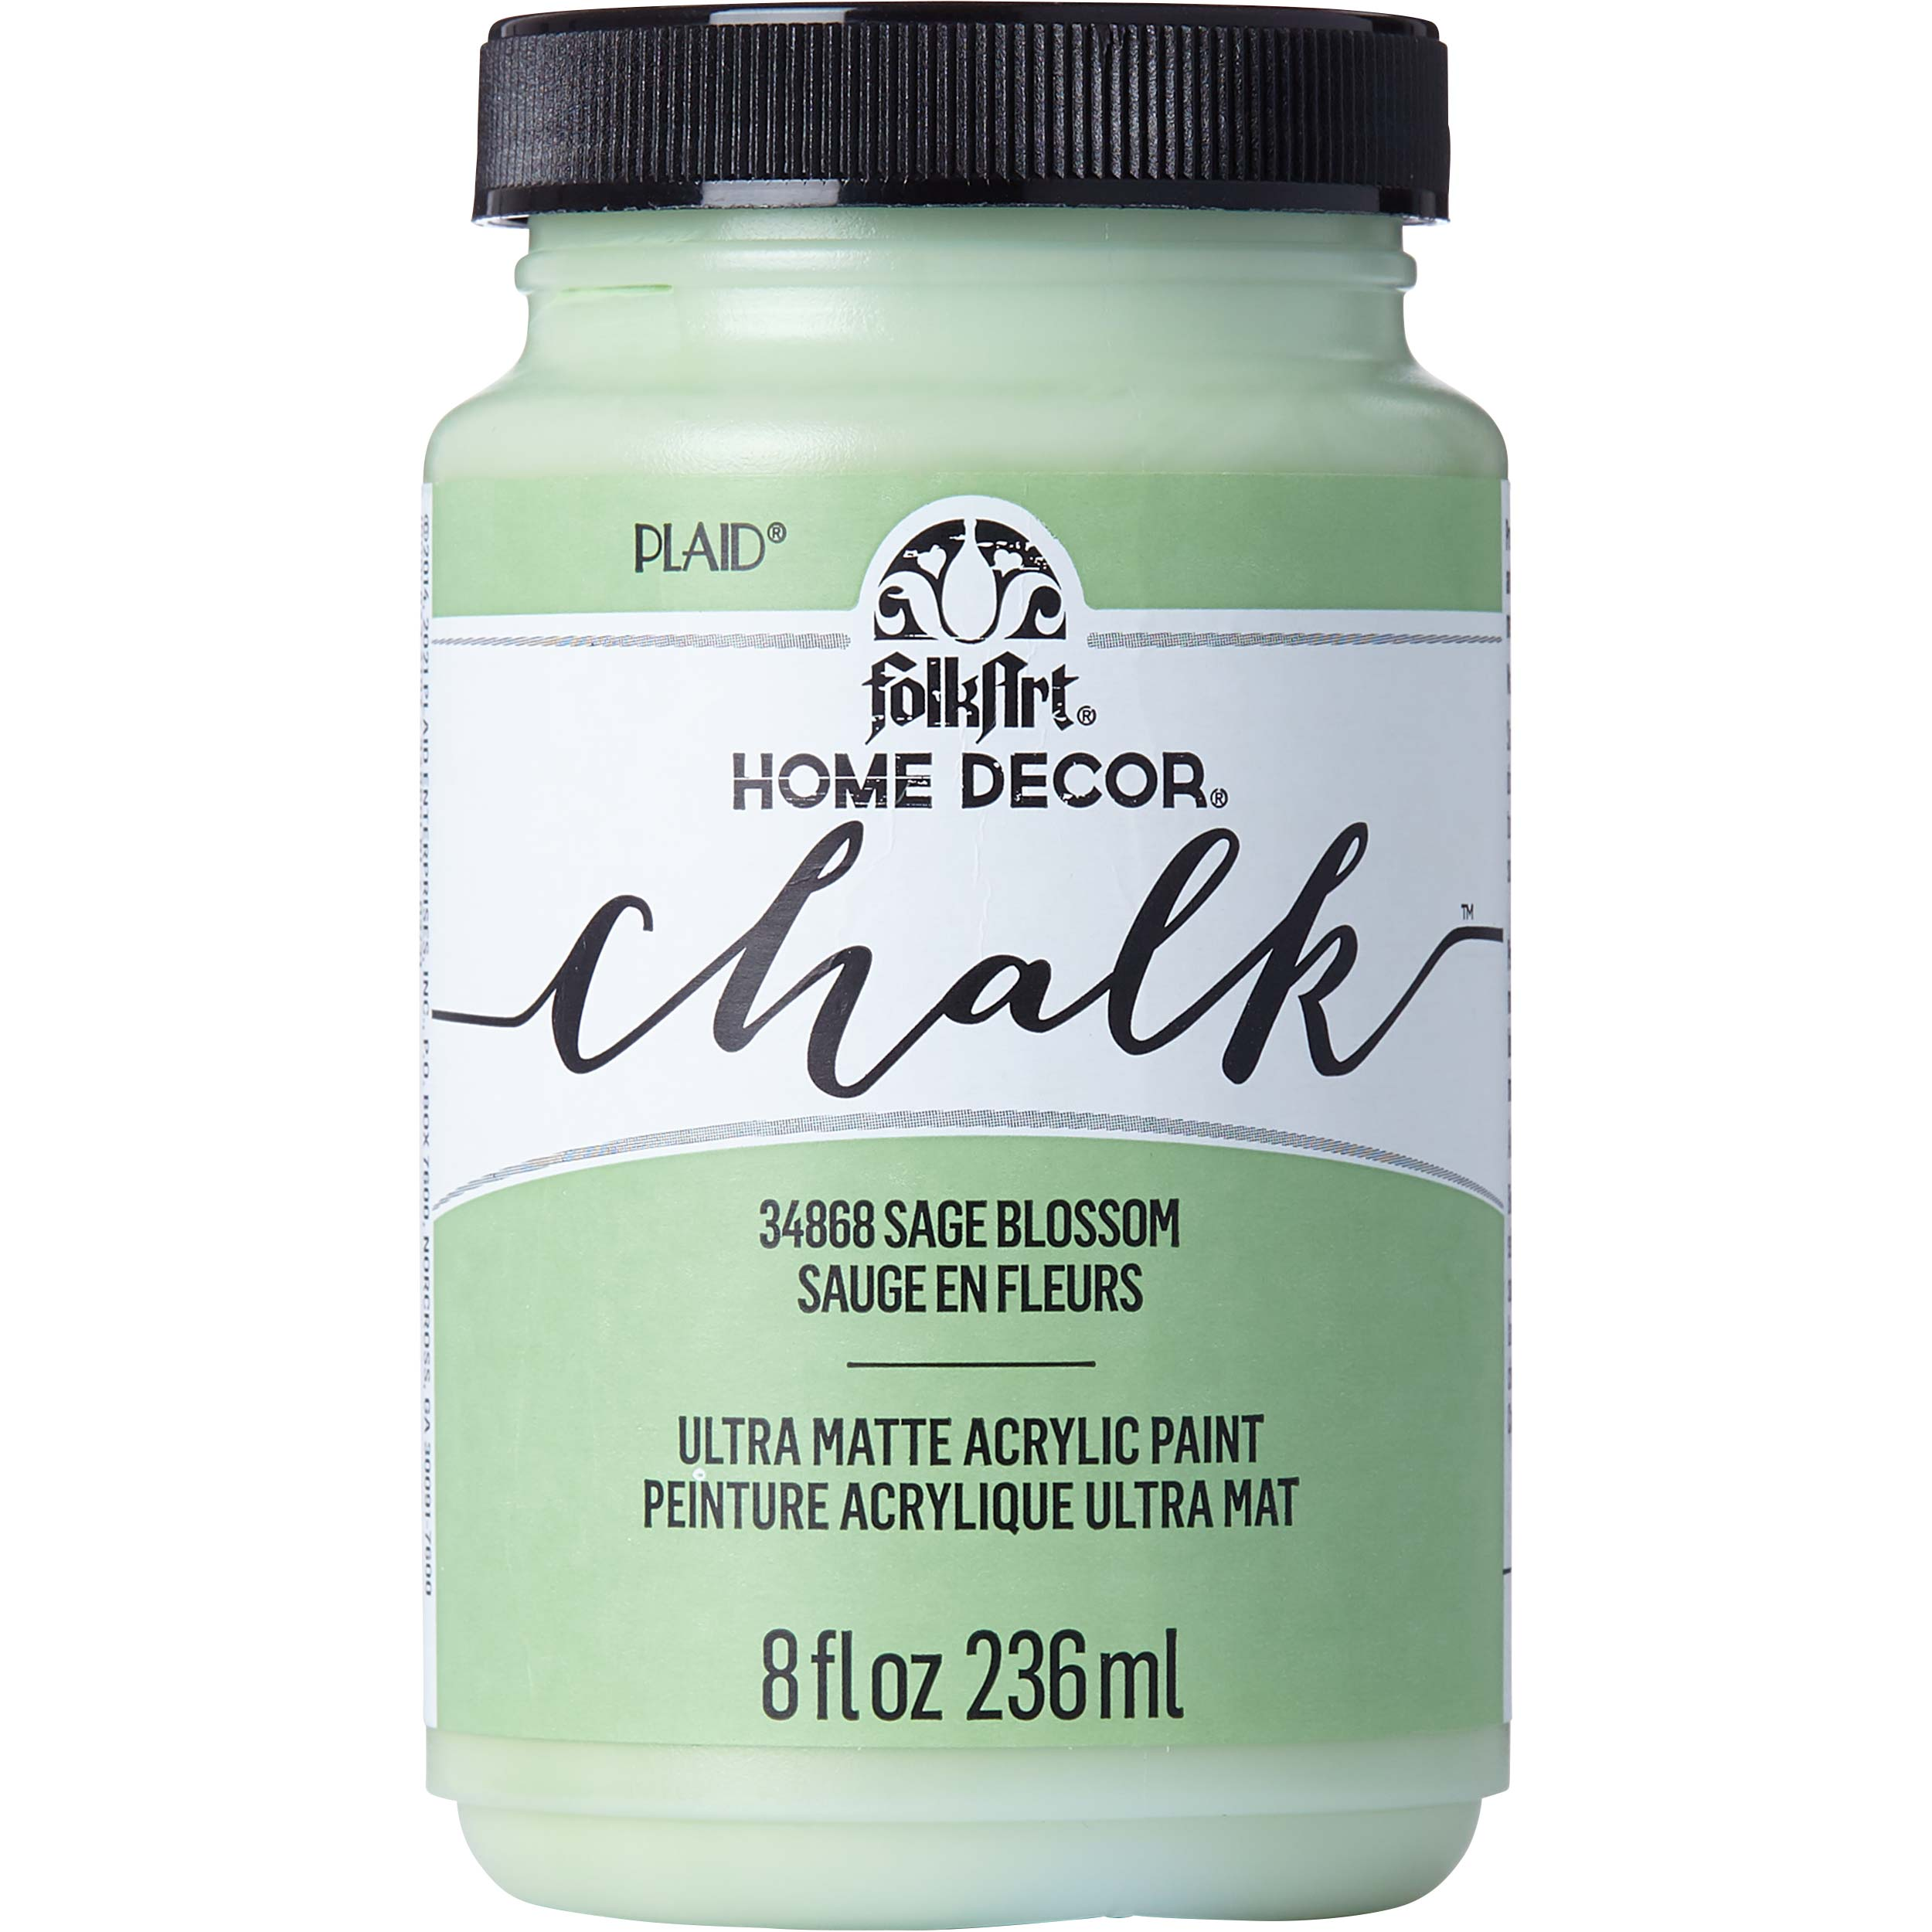 Shop Plaid Folkart Home Decor Chalk Sage Blossom 8 Oz 34868 34868 Plaid Online